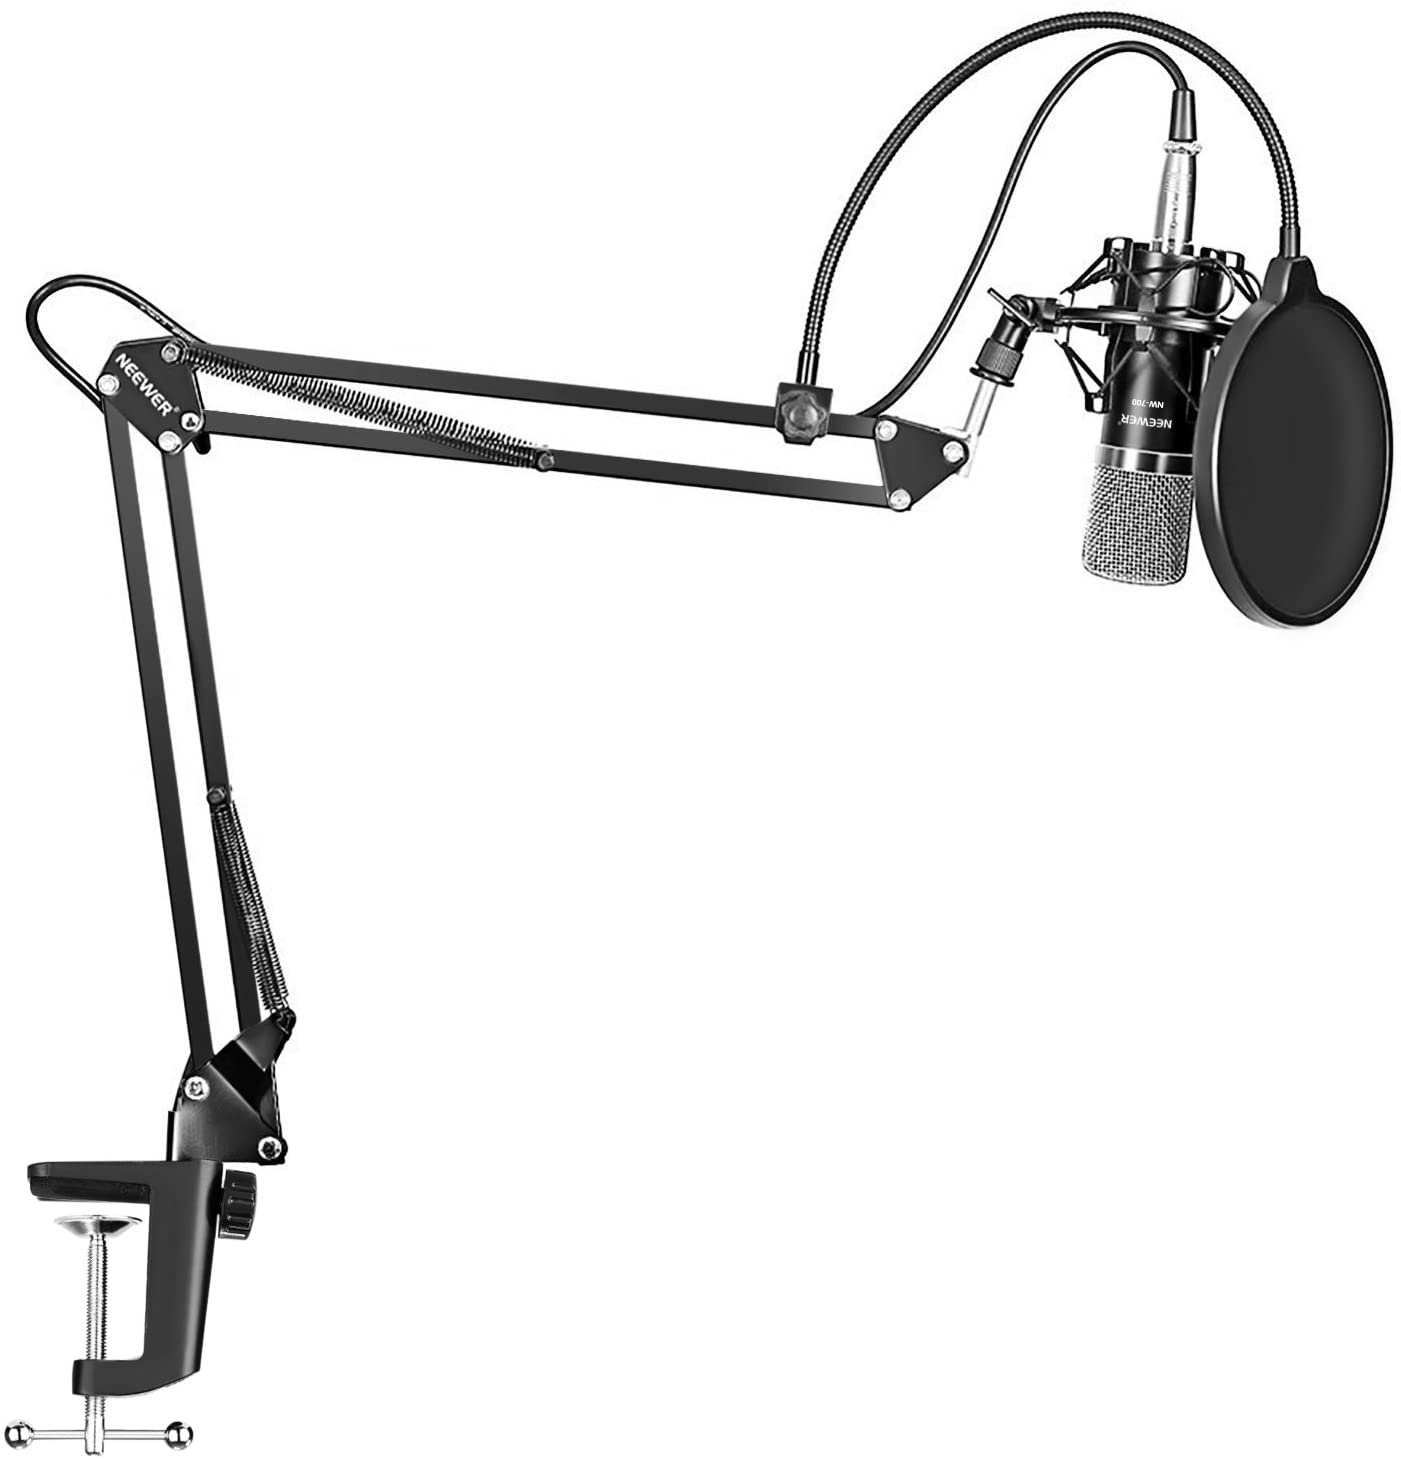 neewer nw 700 condenser mic image